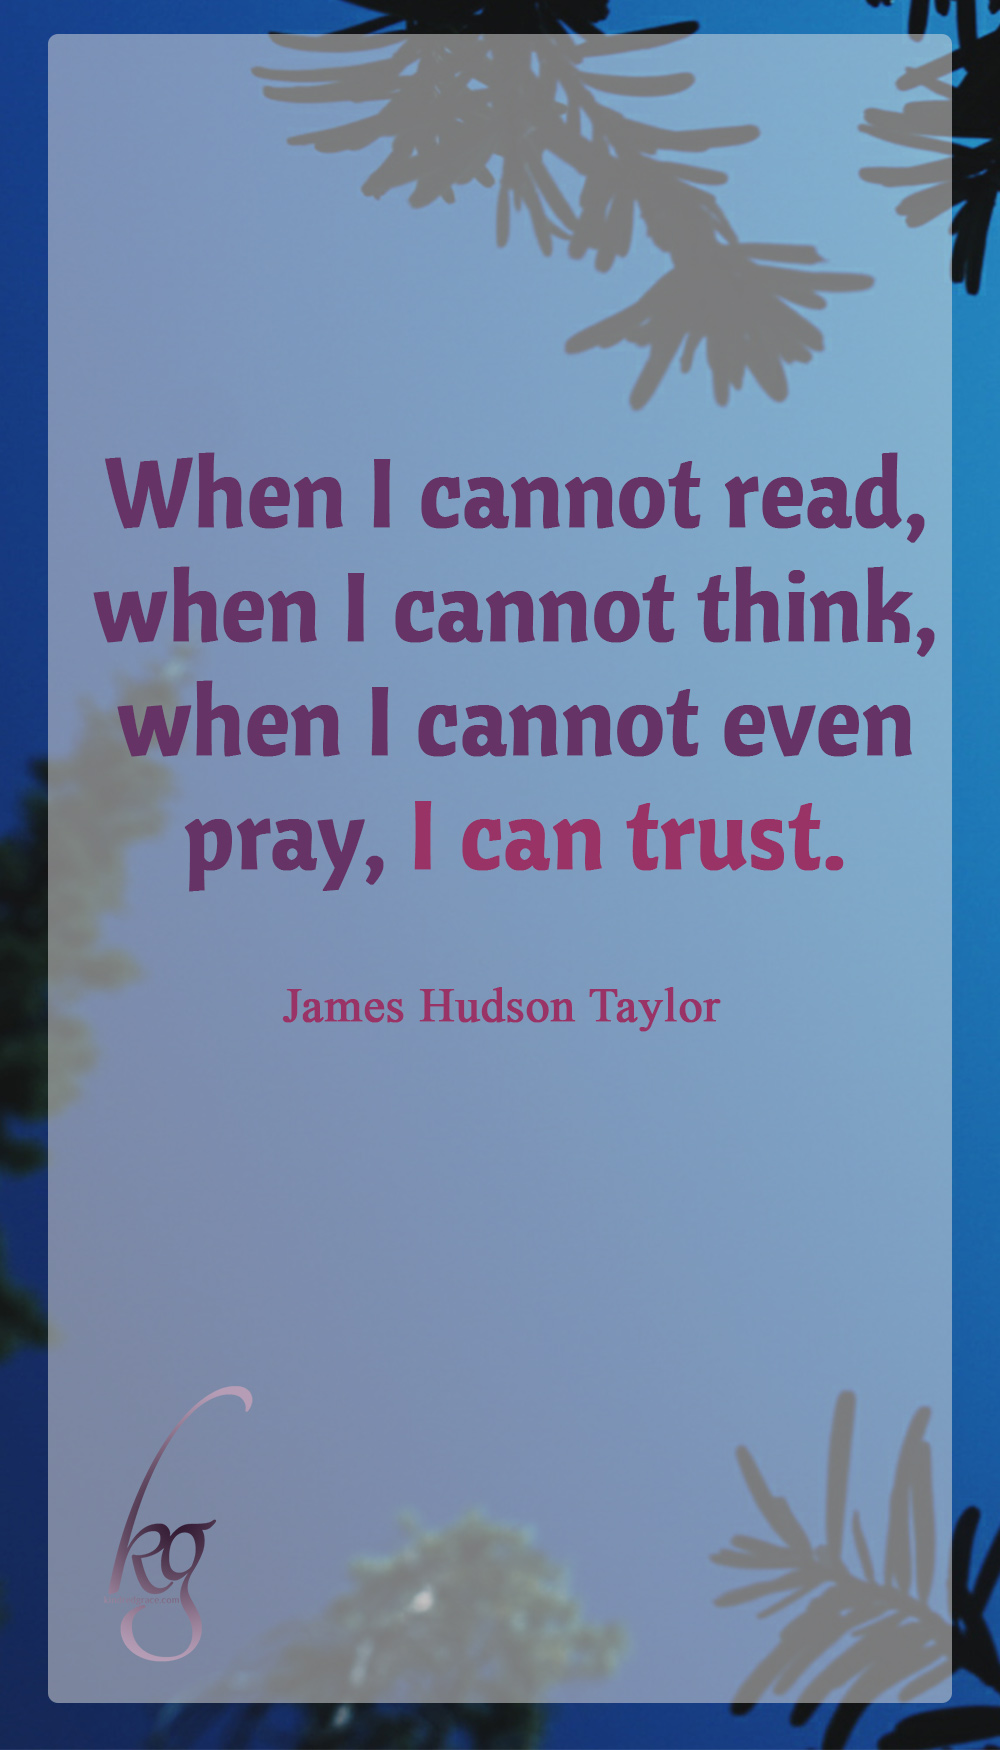 """When I cannot read, when I cannot think, when I cannot even pray, I can trust."" (James Hudson Taylor)"